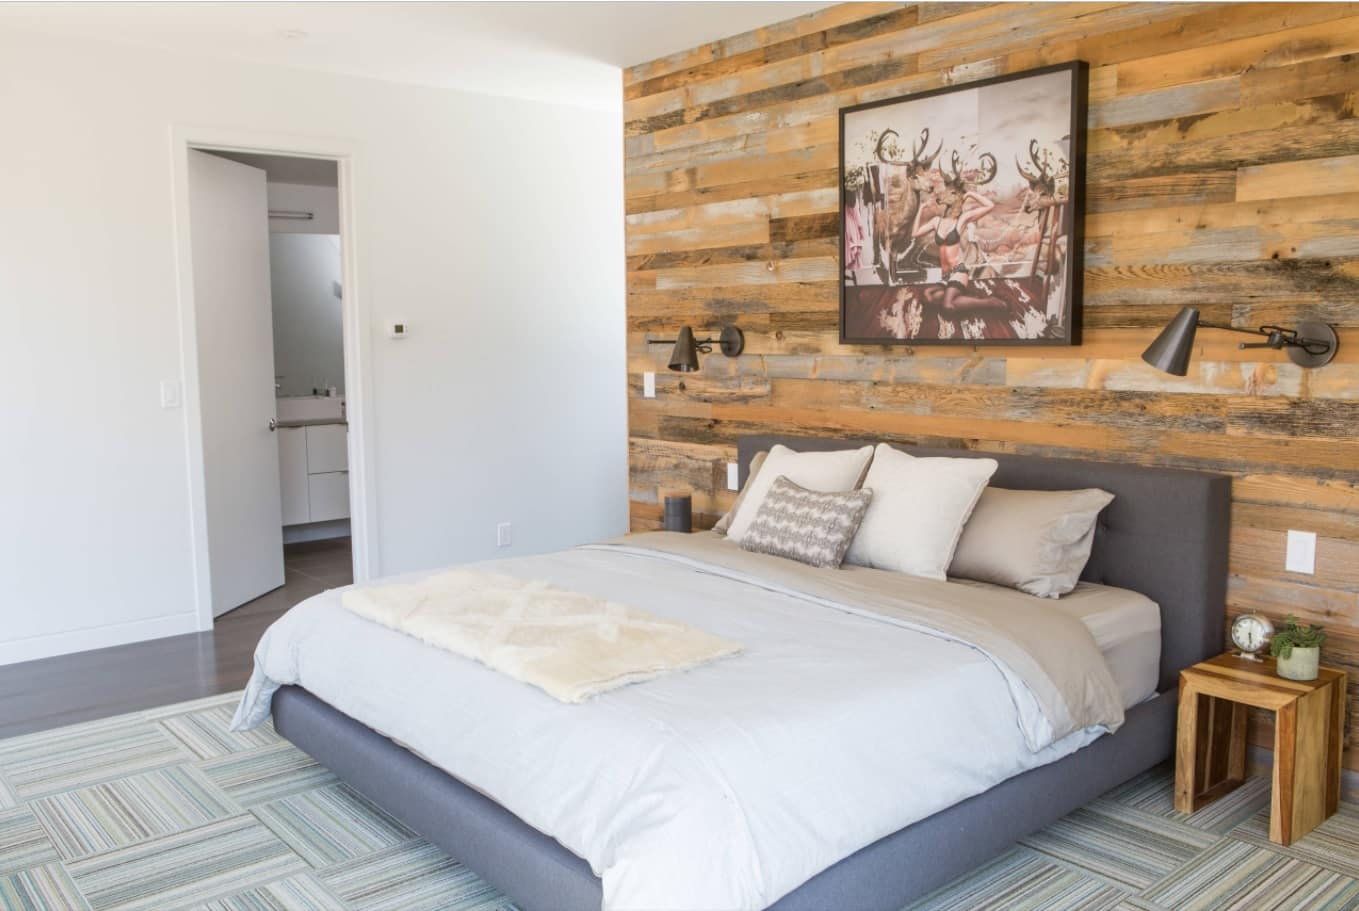 Home Remodeling & Renovation Ideas: 4 Ways to Update Your Home. Recycled wooden pallet accent wall in the bedroom